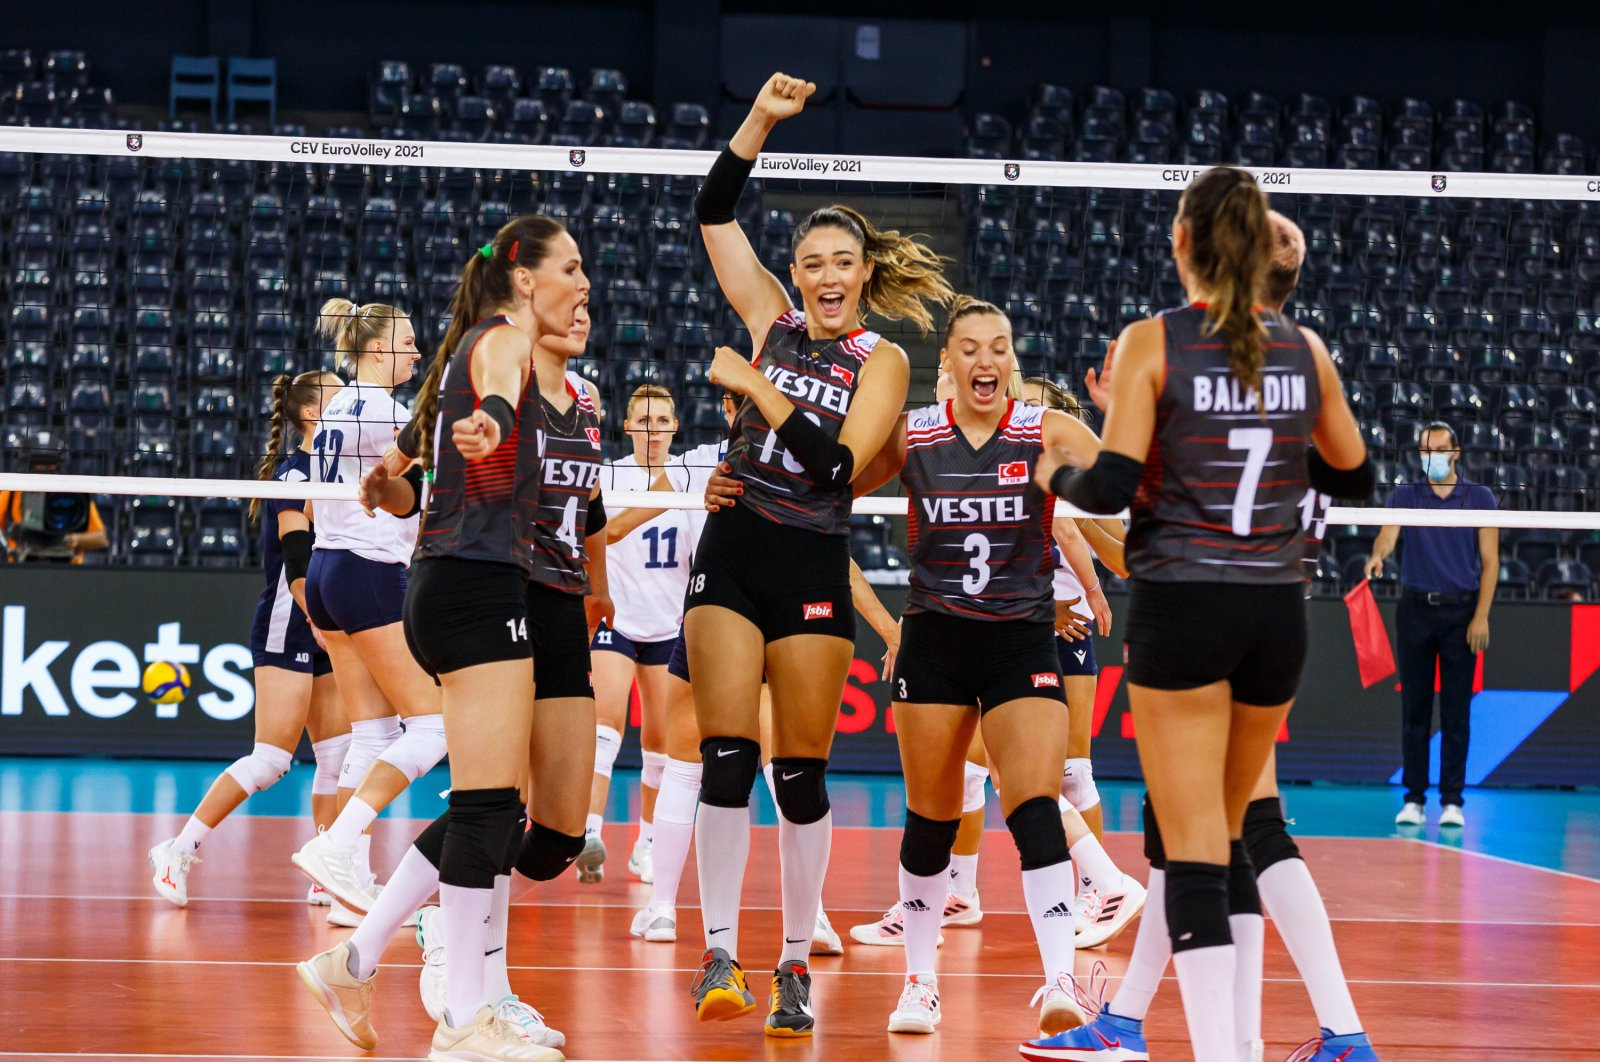 Turkey women's national team players celebrate a point against Finland in the2021 CEV Women's European Volleyball Championship, Cluj-Napoca, Romania, Aug. 23, 2021. (AA Photo)